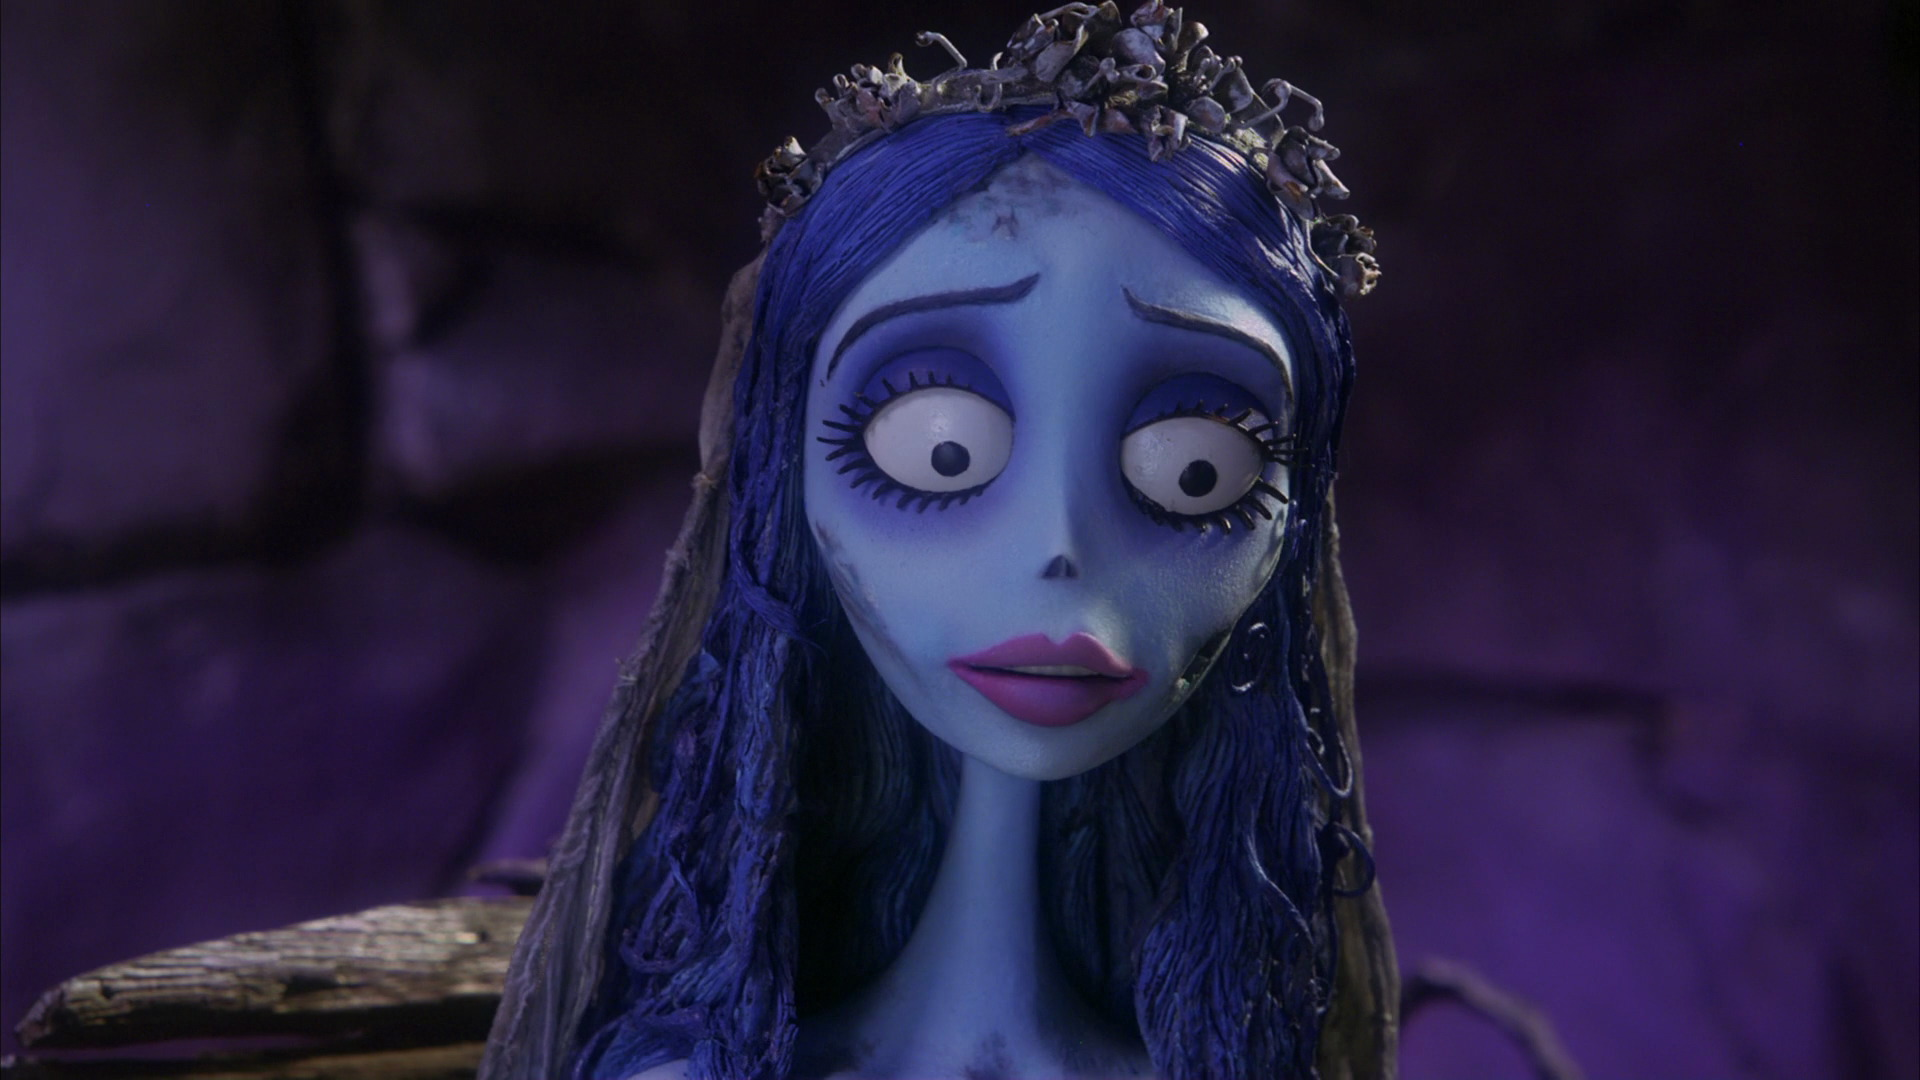 corpse bride Tim burton redefines gothic romance in the stop-motion tale of an undead bride and her still-breathing groom.